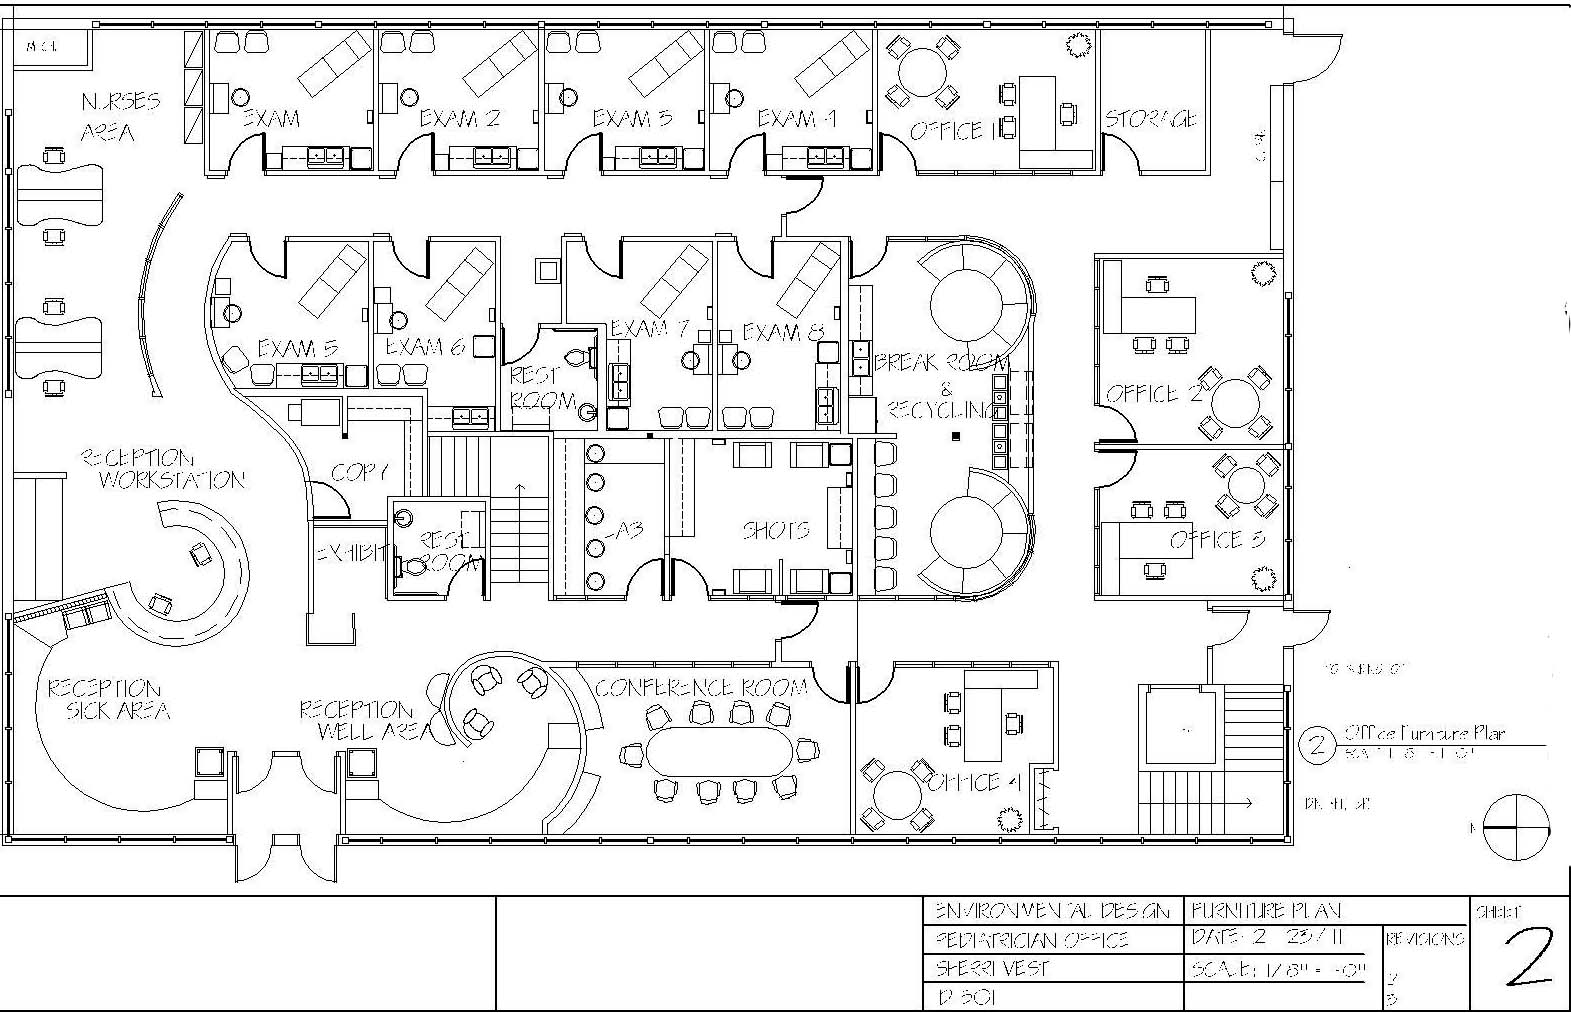 Pediatric office floor plan by sherri vest at for Office layout plan design